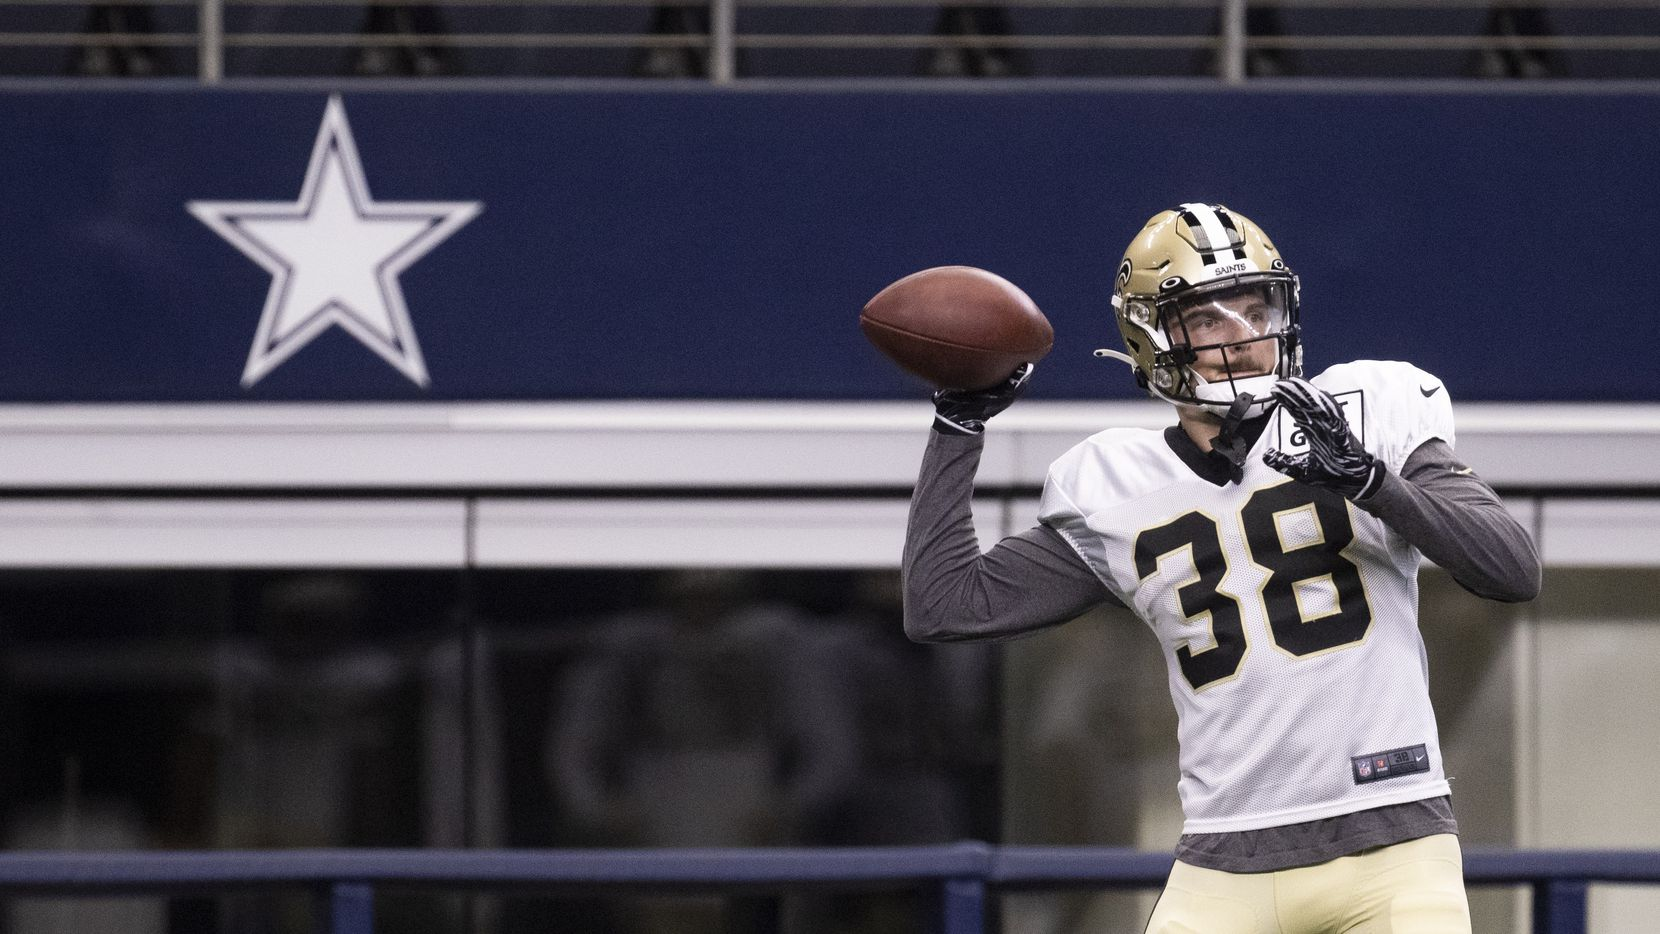 New Orleans Saints strong safety Jeff Heath (38) throws the ball during practice on Monday, Aug. 30, 2021, at AT&T Stadium in Arlington. The New Orleans Saints are practicing at AT&T Stadium after evacuating because of Hurricane Ida.